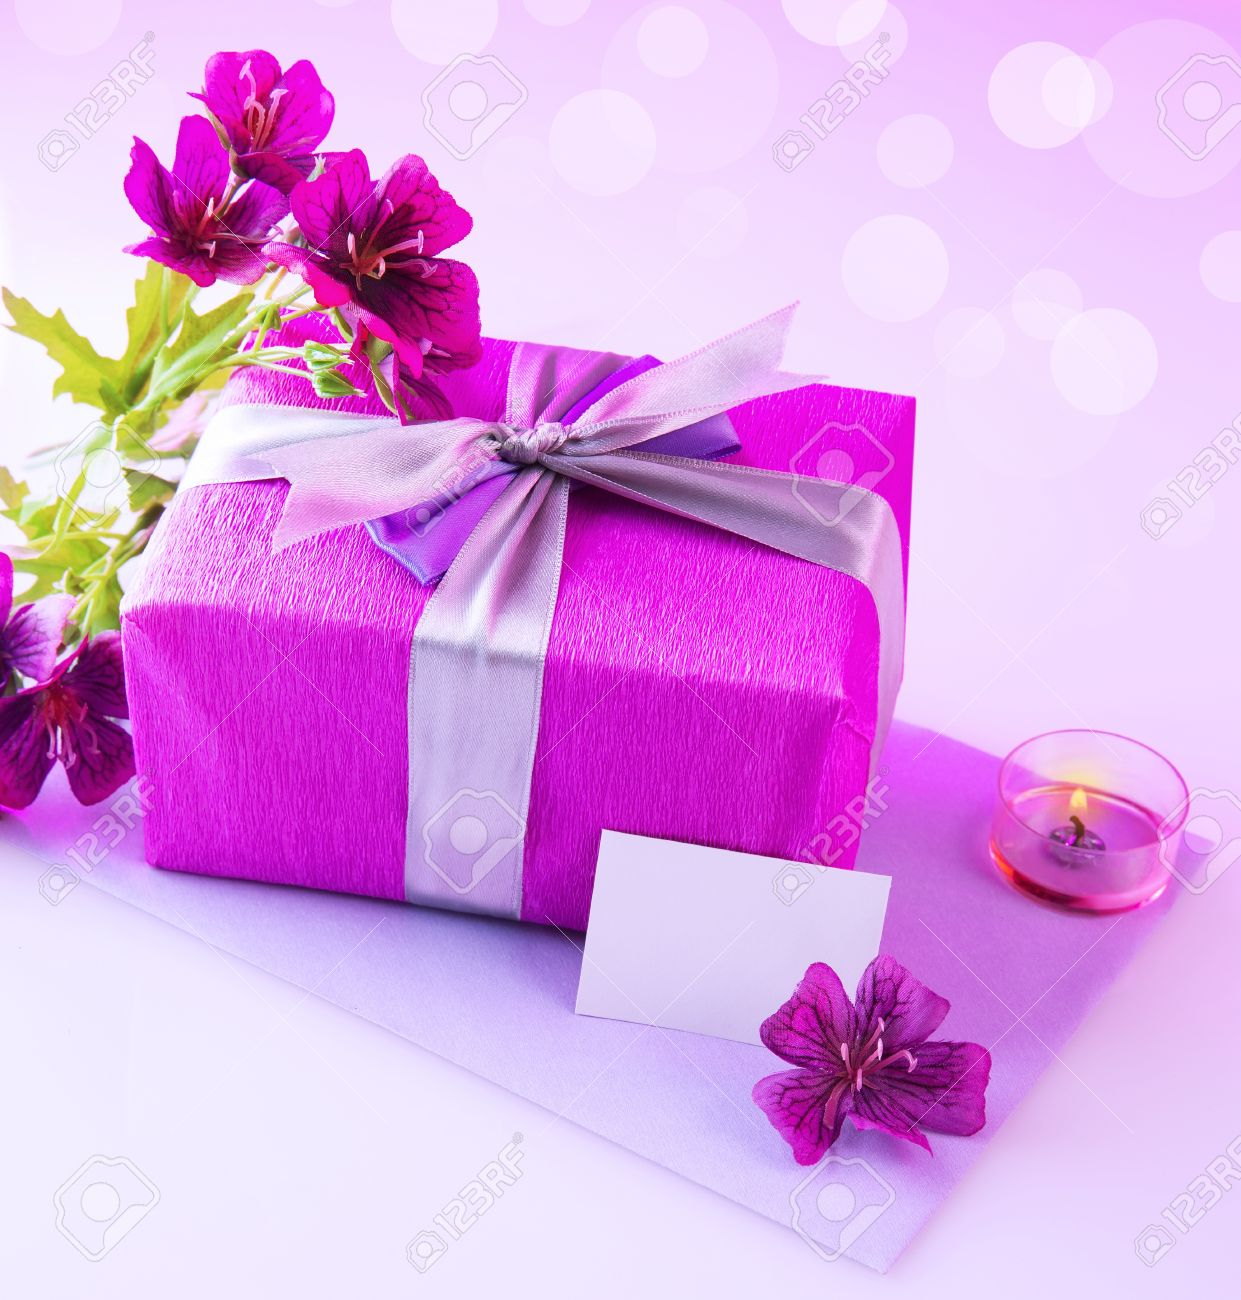 Photo Of Pink Giftbox With Silk Bow Fresh Purple Flowers Candle